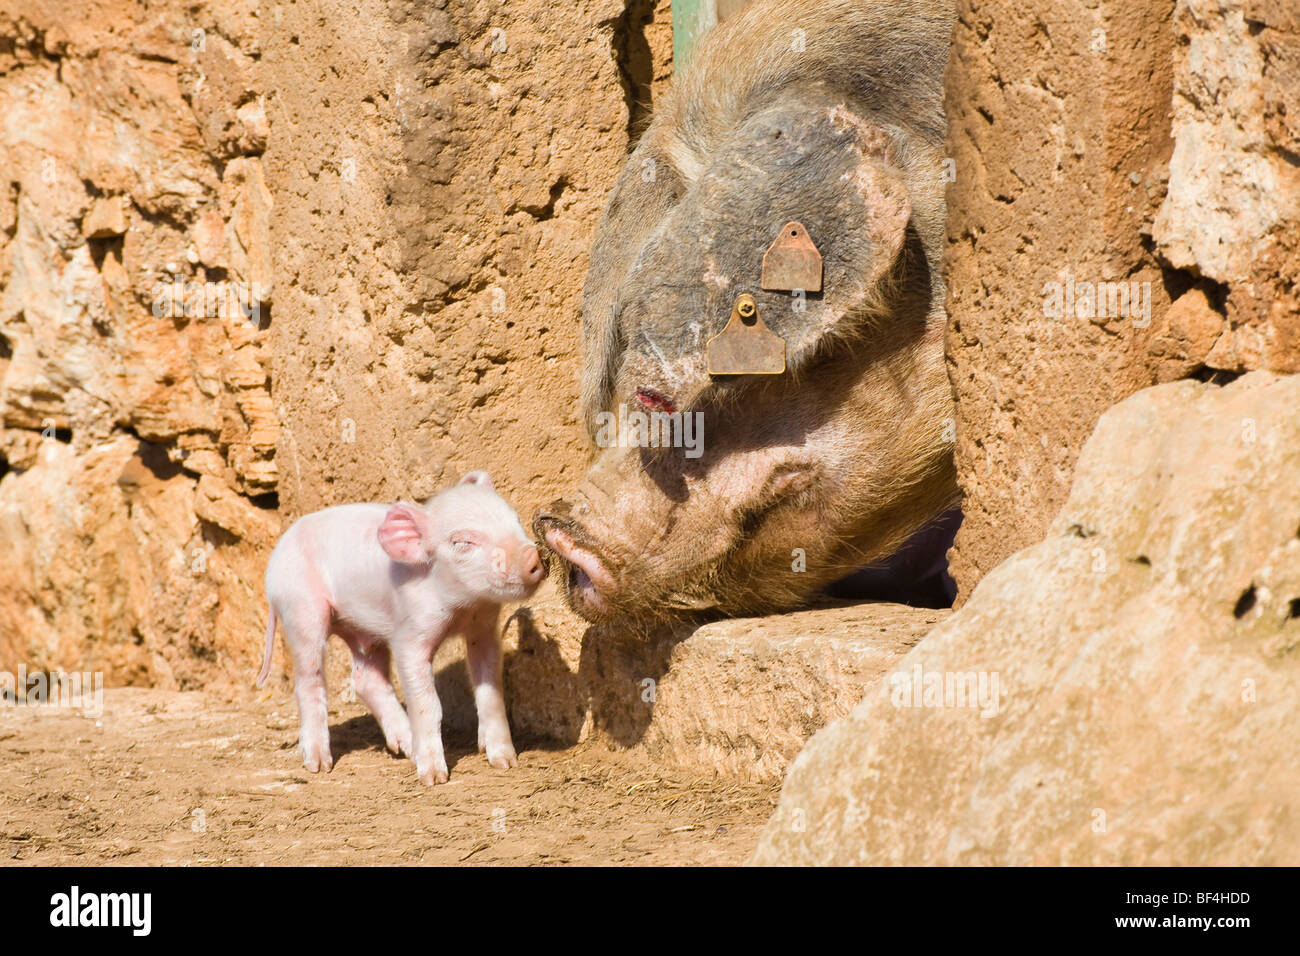 Domestic pig (Sus scrofa domesticus) piglet, mother with young, Mallorca, Majorca, Balearic Islands, Spain, Europe - Stock Image